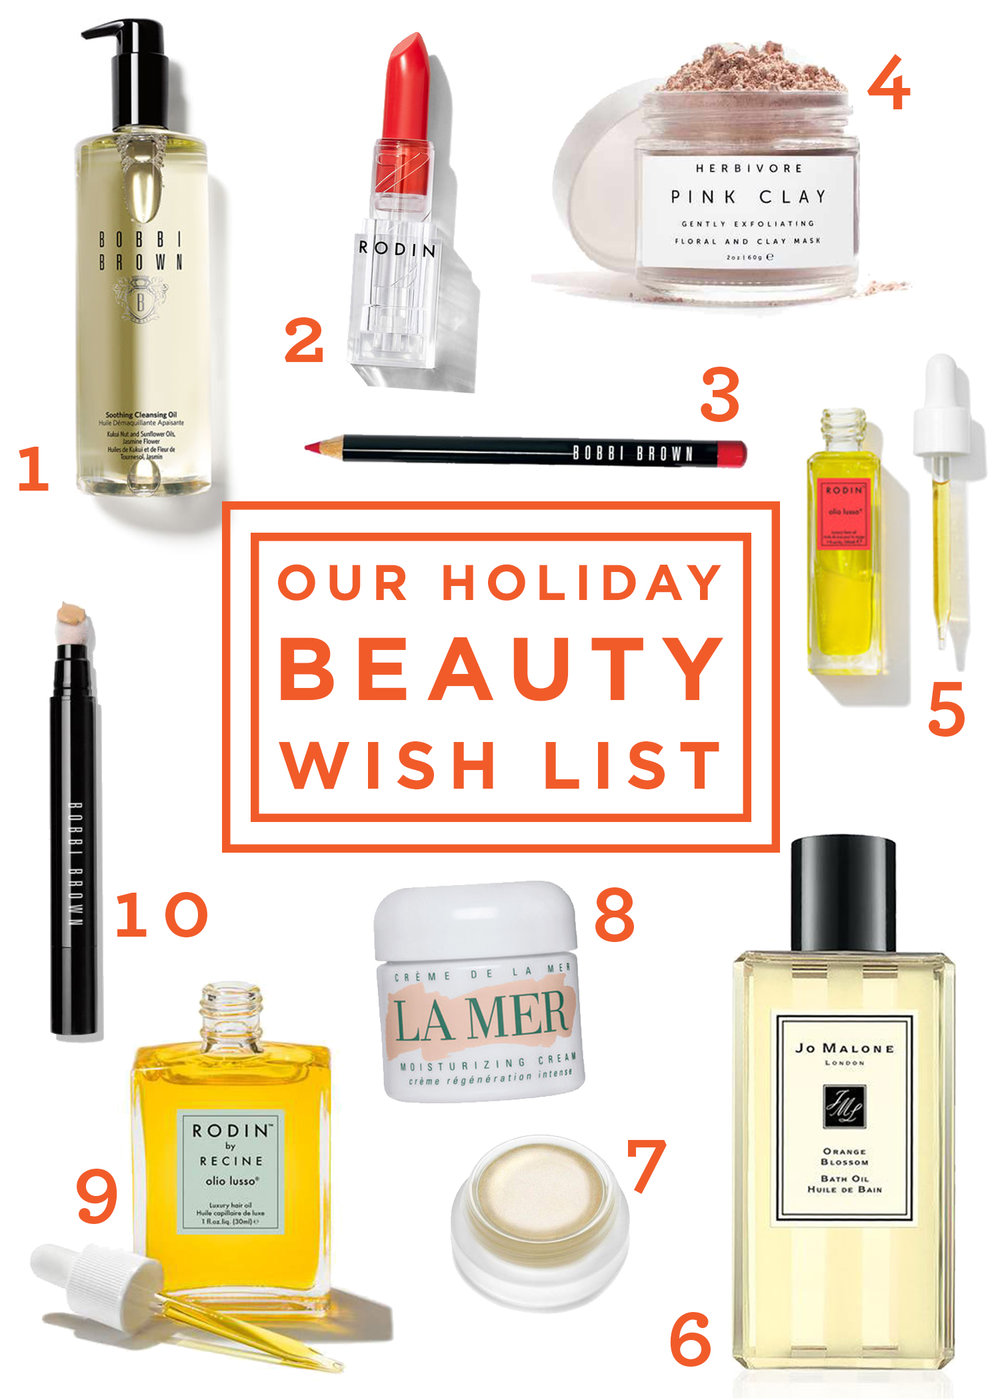 Pencil & Paper Co Beauty Wish List